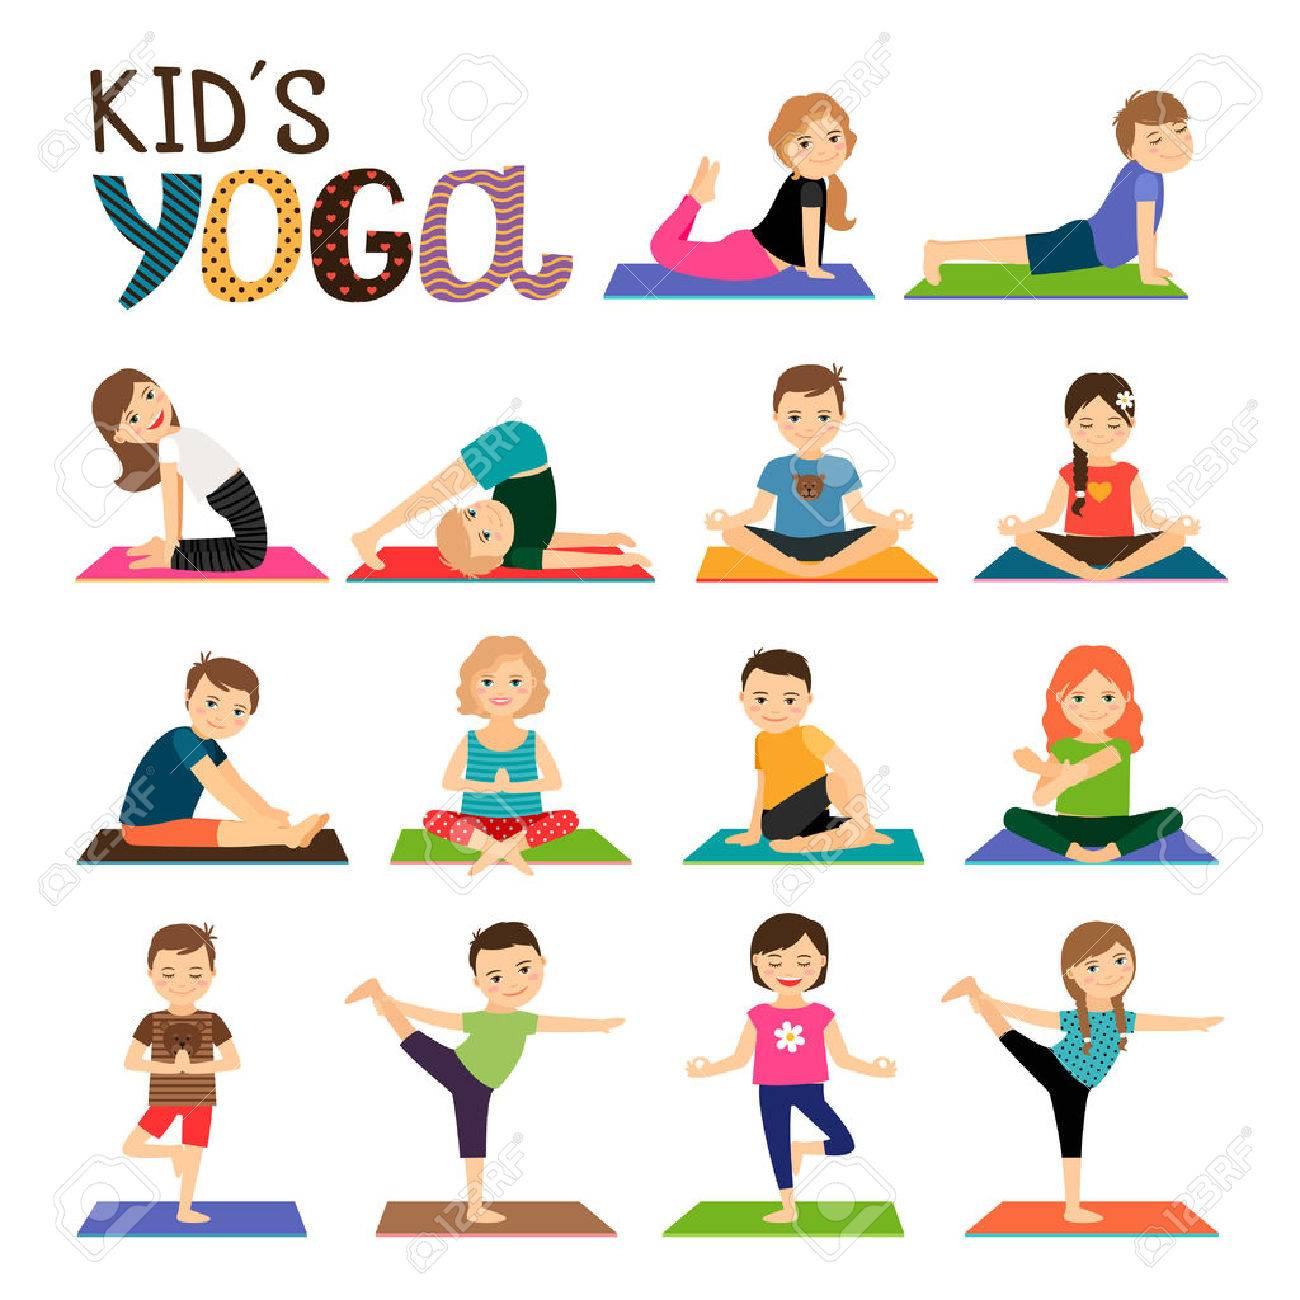 Kids Yoga Vector Icons Set Smiling Children In Different Poses Collection On White Background